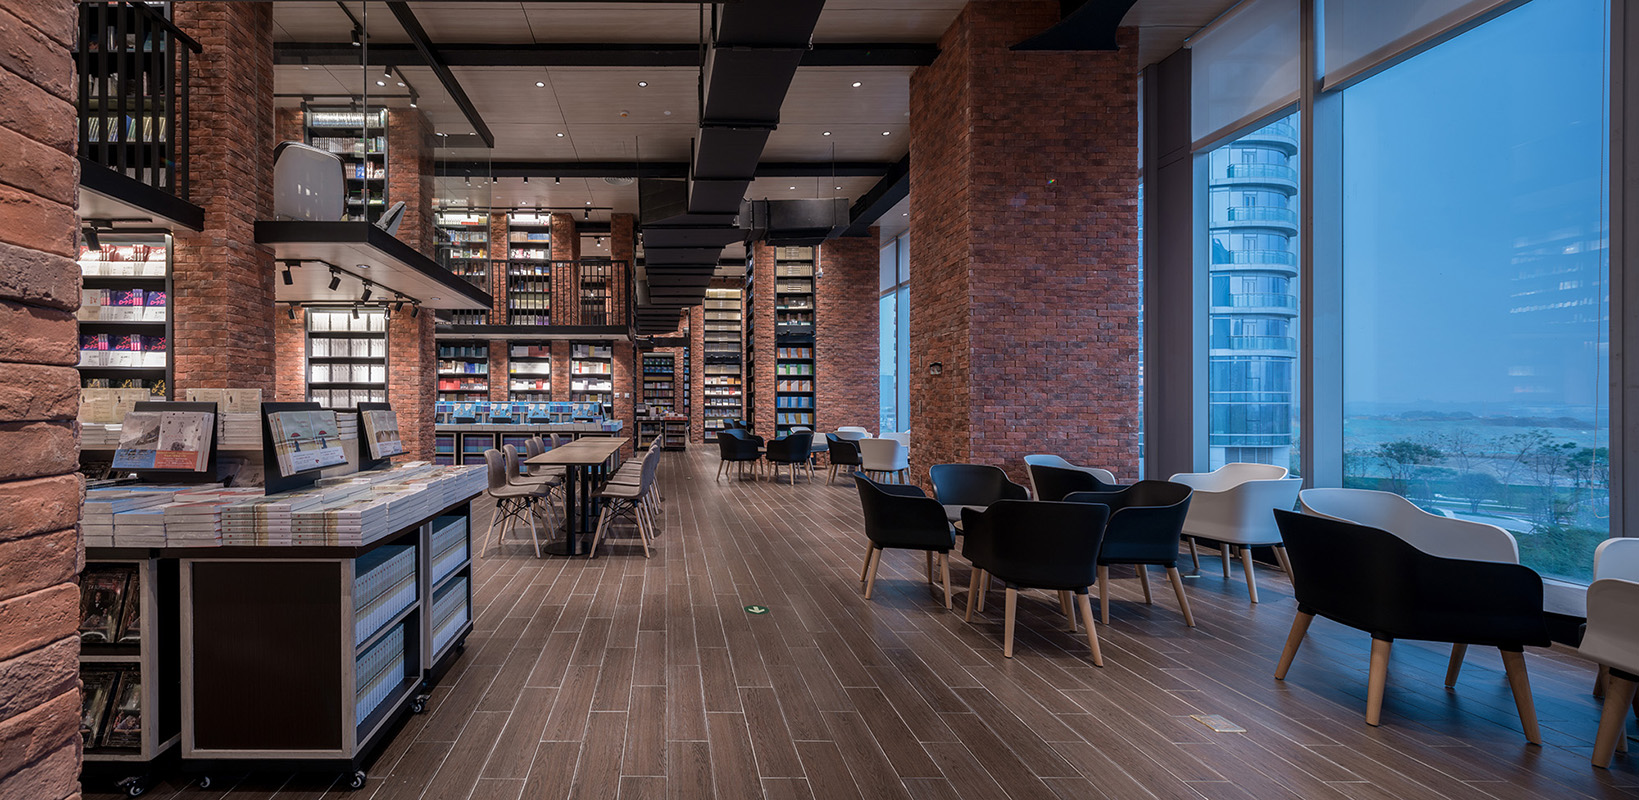 The reading room with red brick cladding